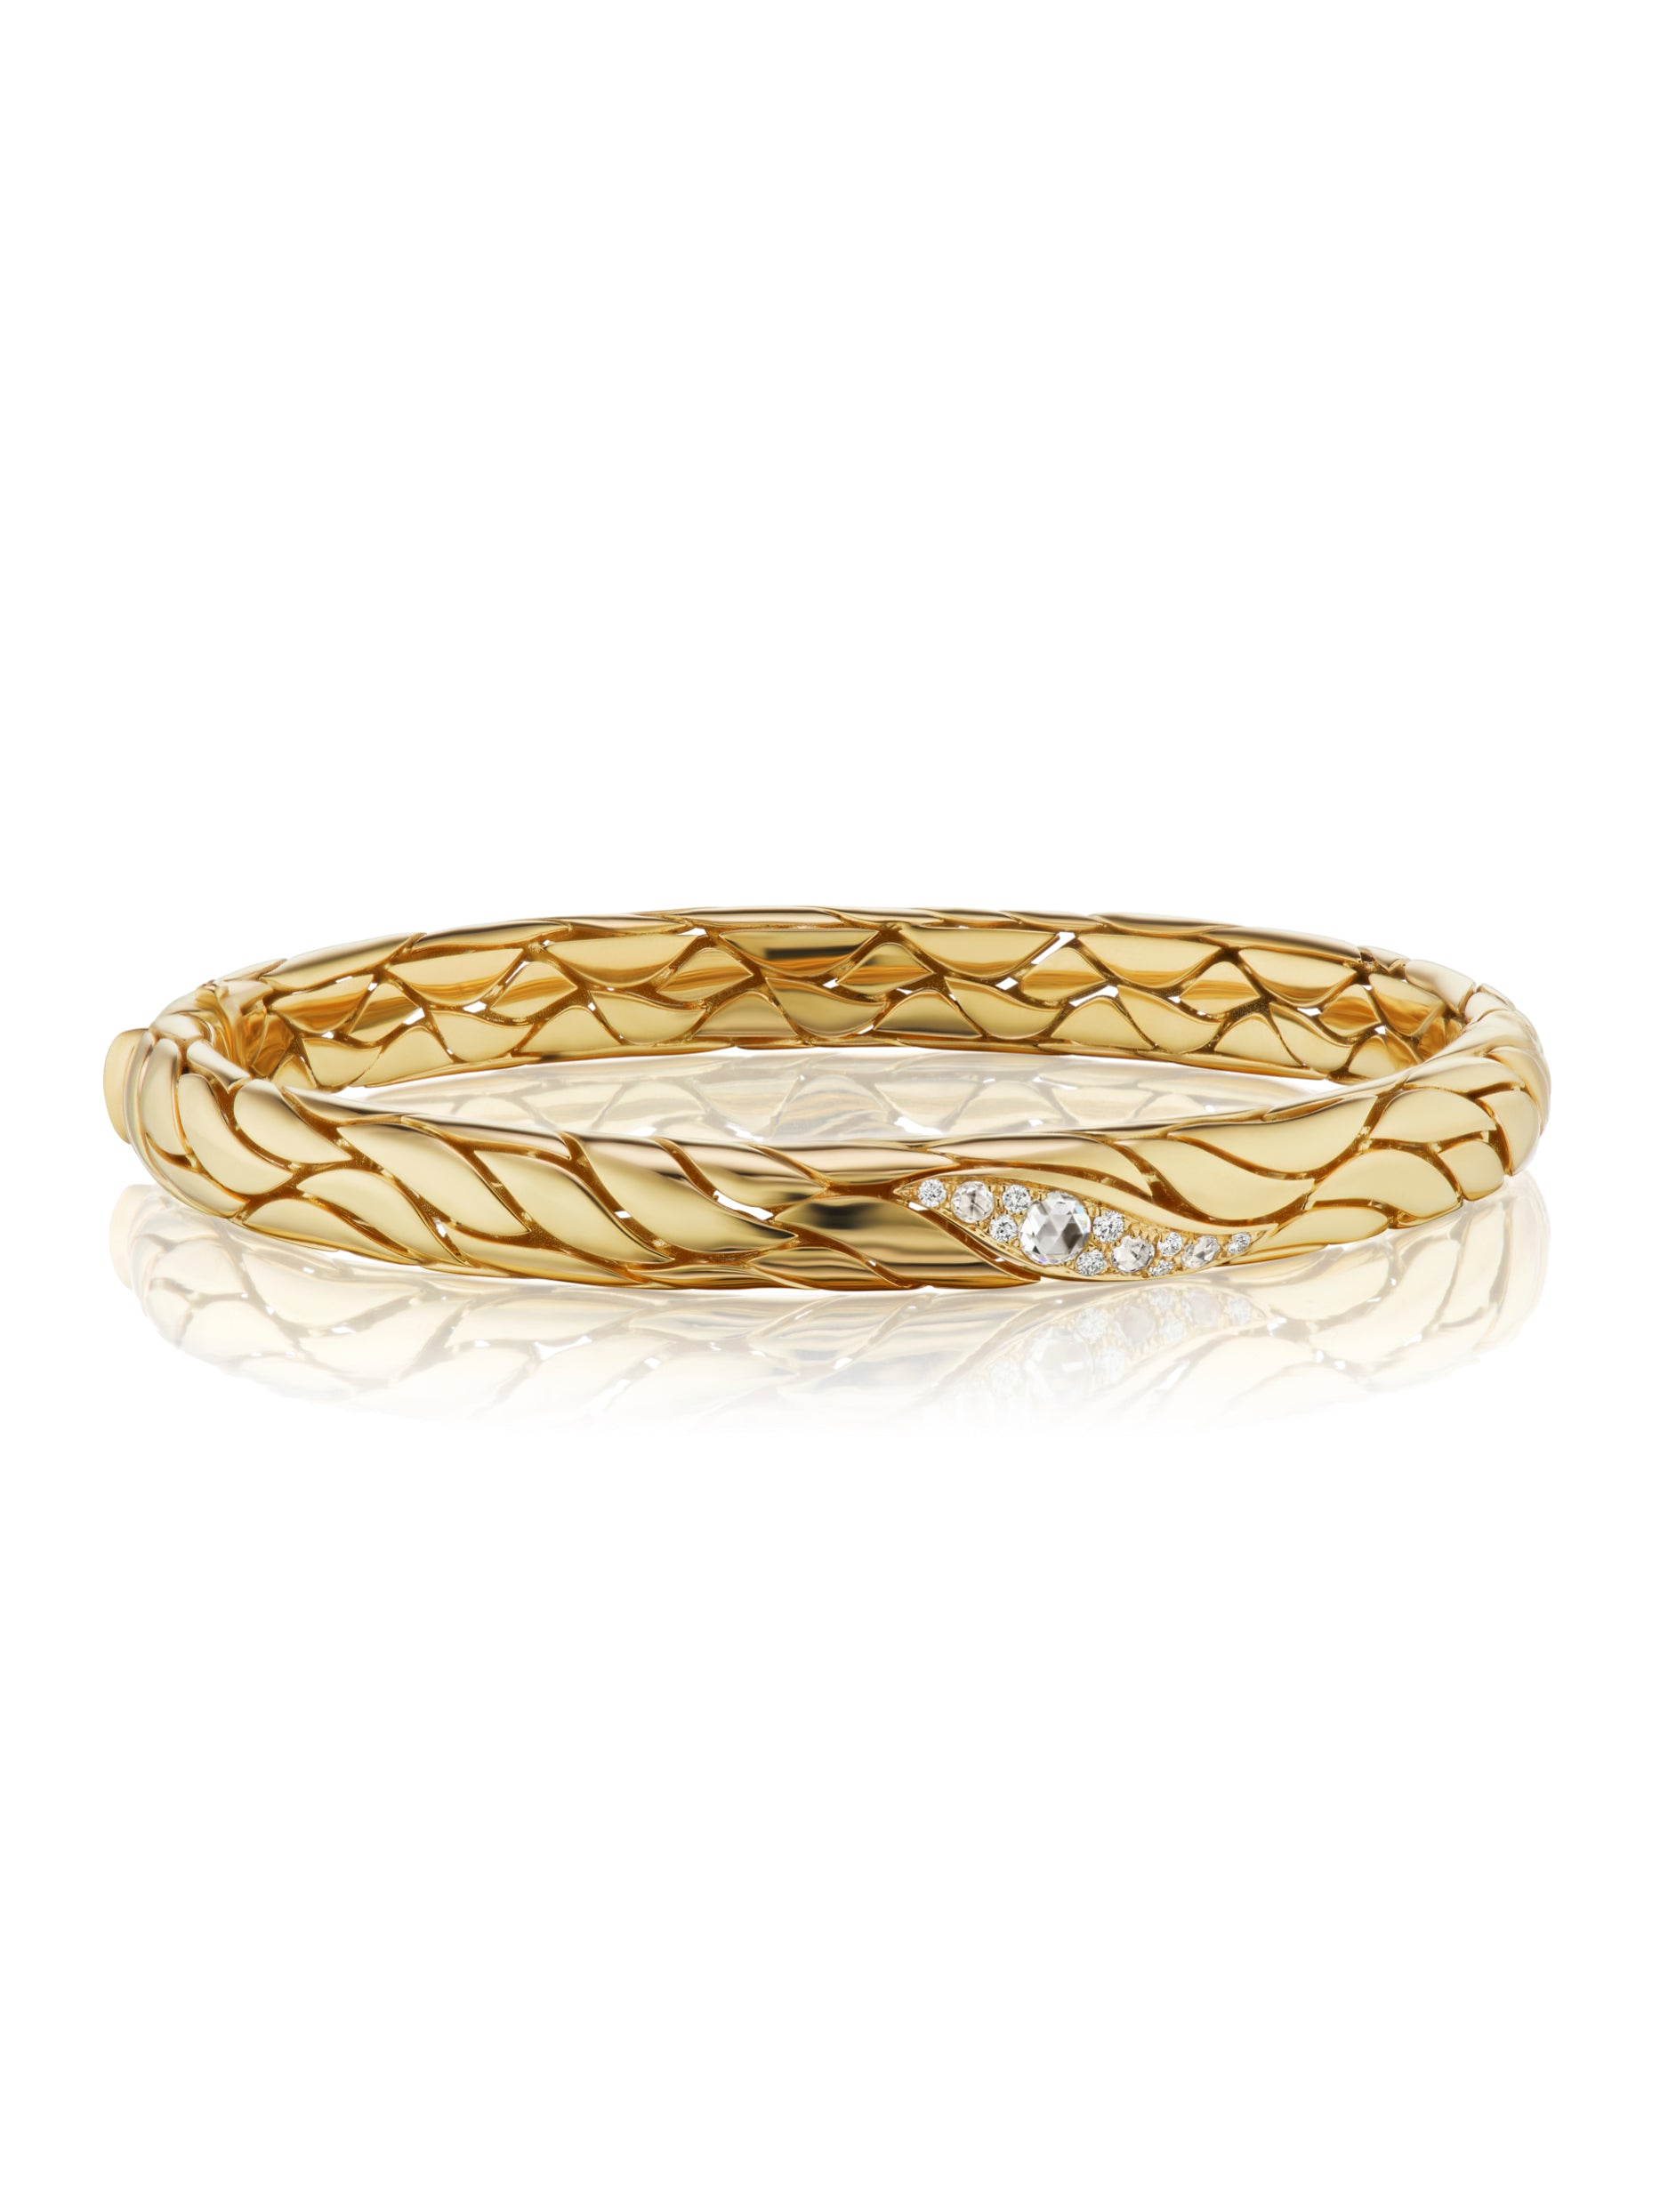 Petal Gold and Diamond Narrow Bangle